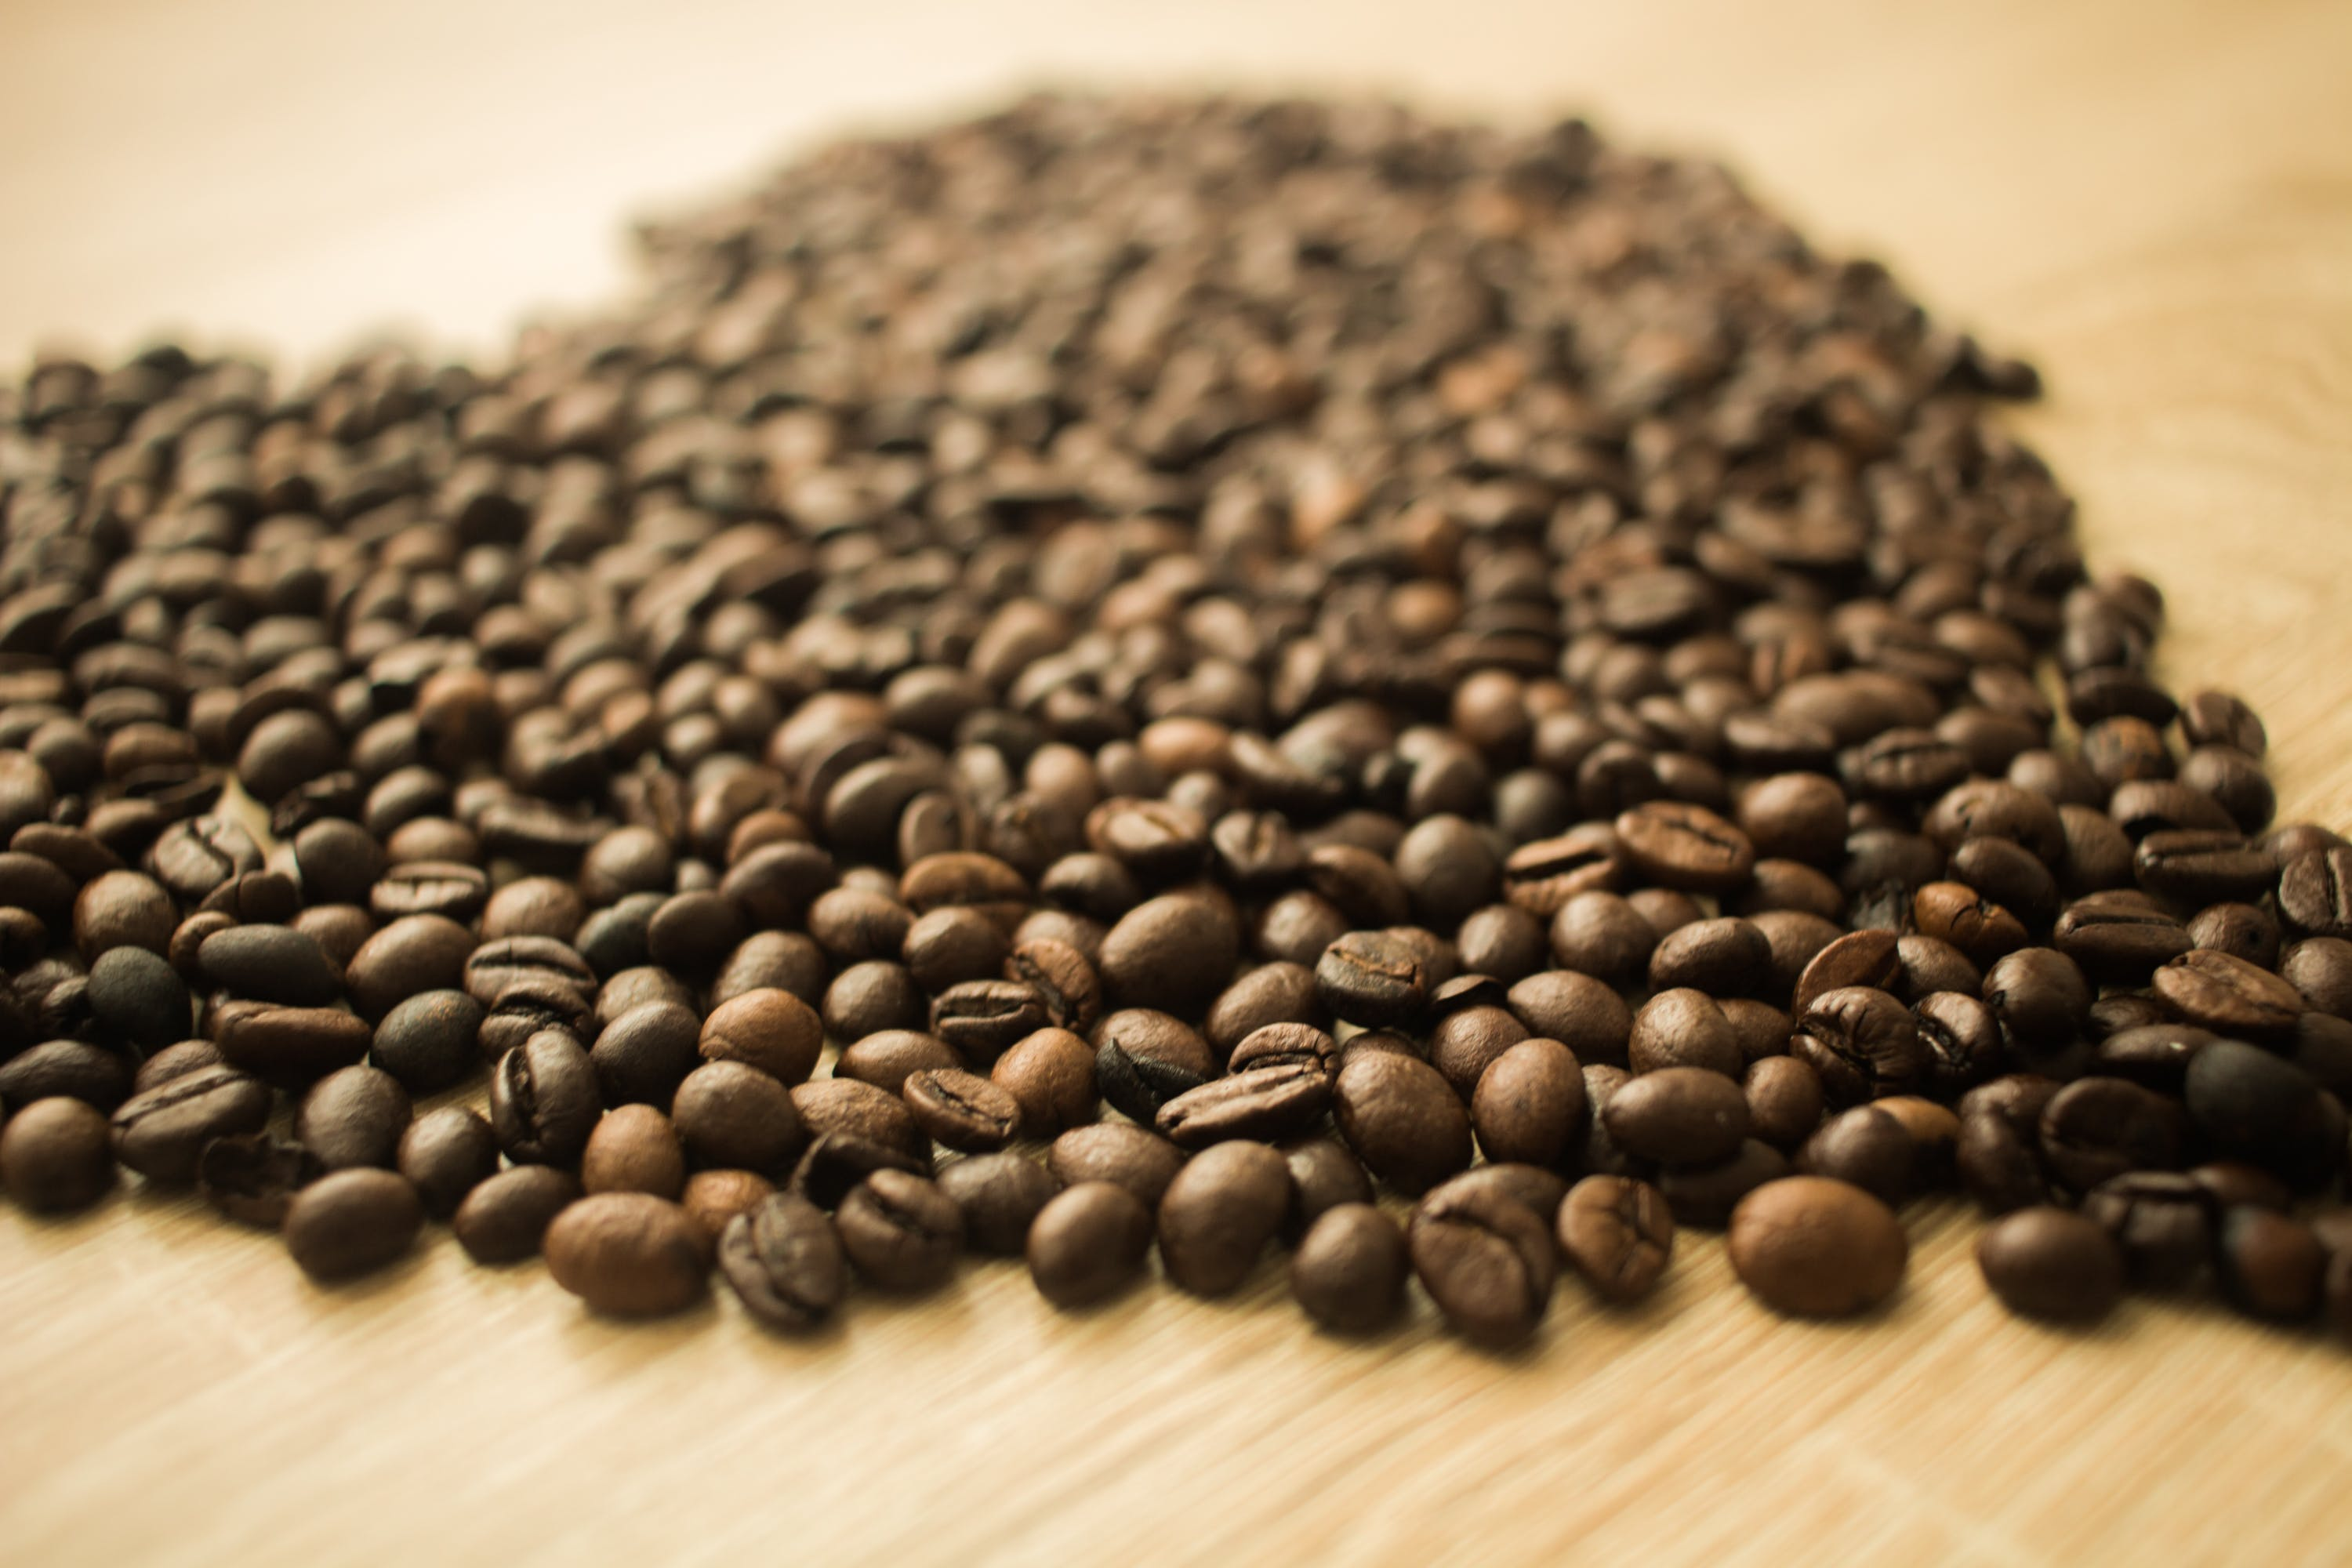 Coffee Beans in a Camera Focus Phoot